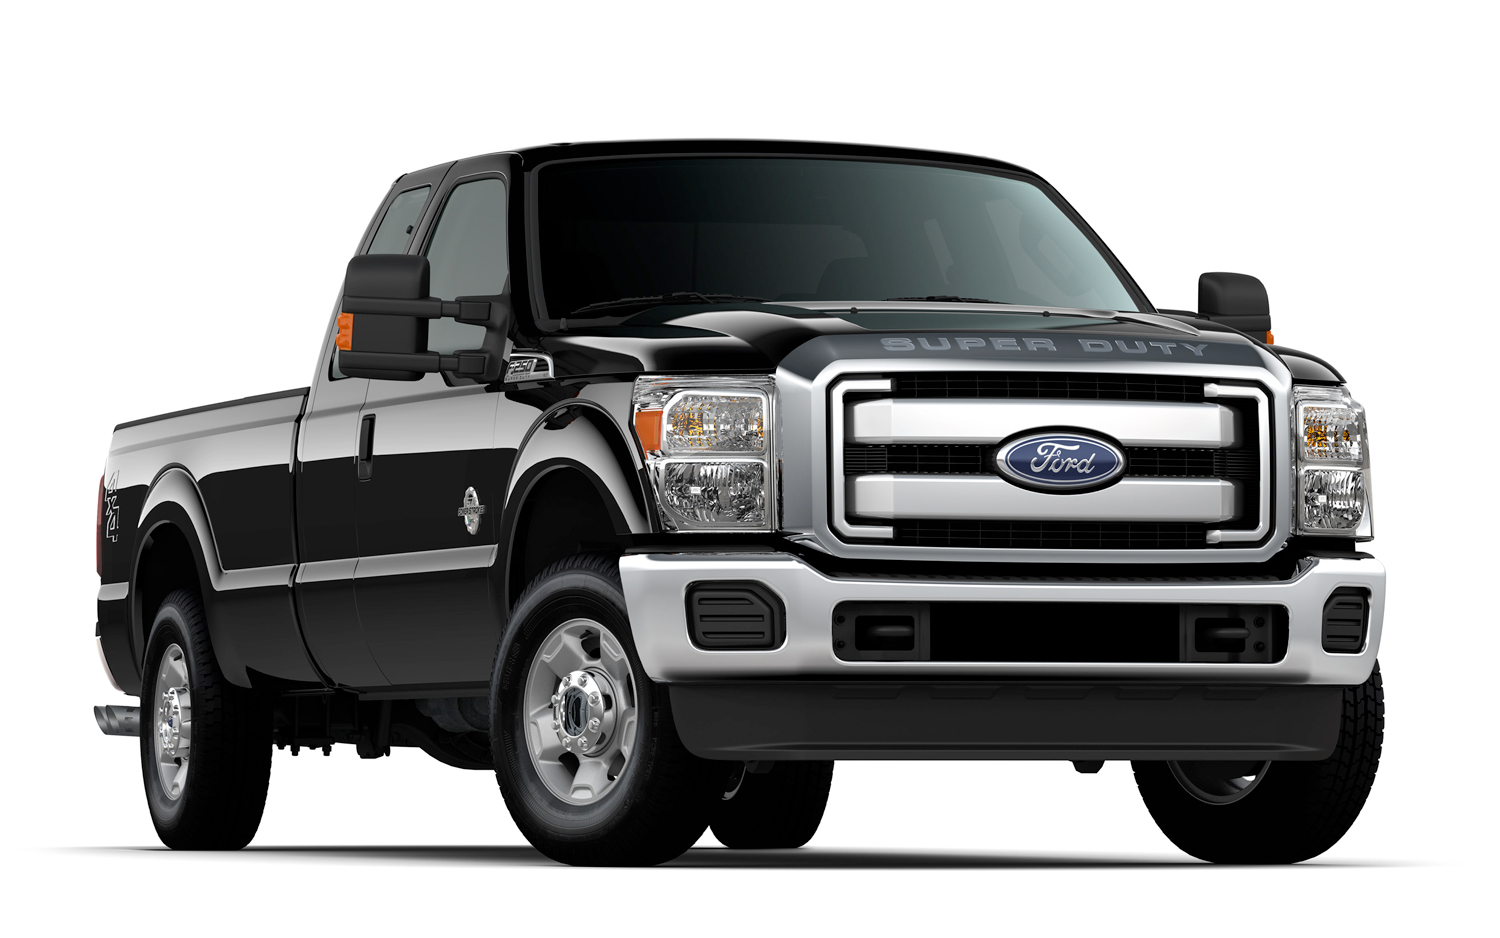 Ford F-250 Super Duty XLT #23